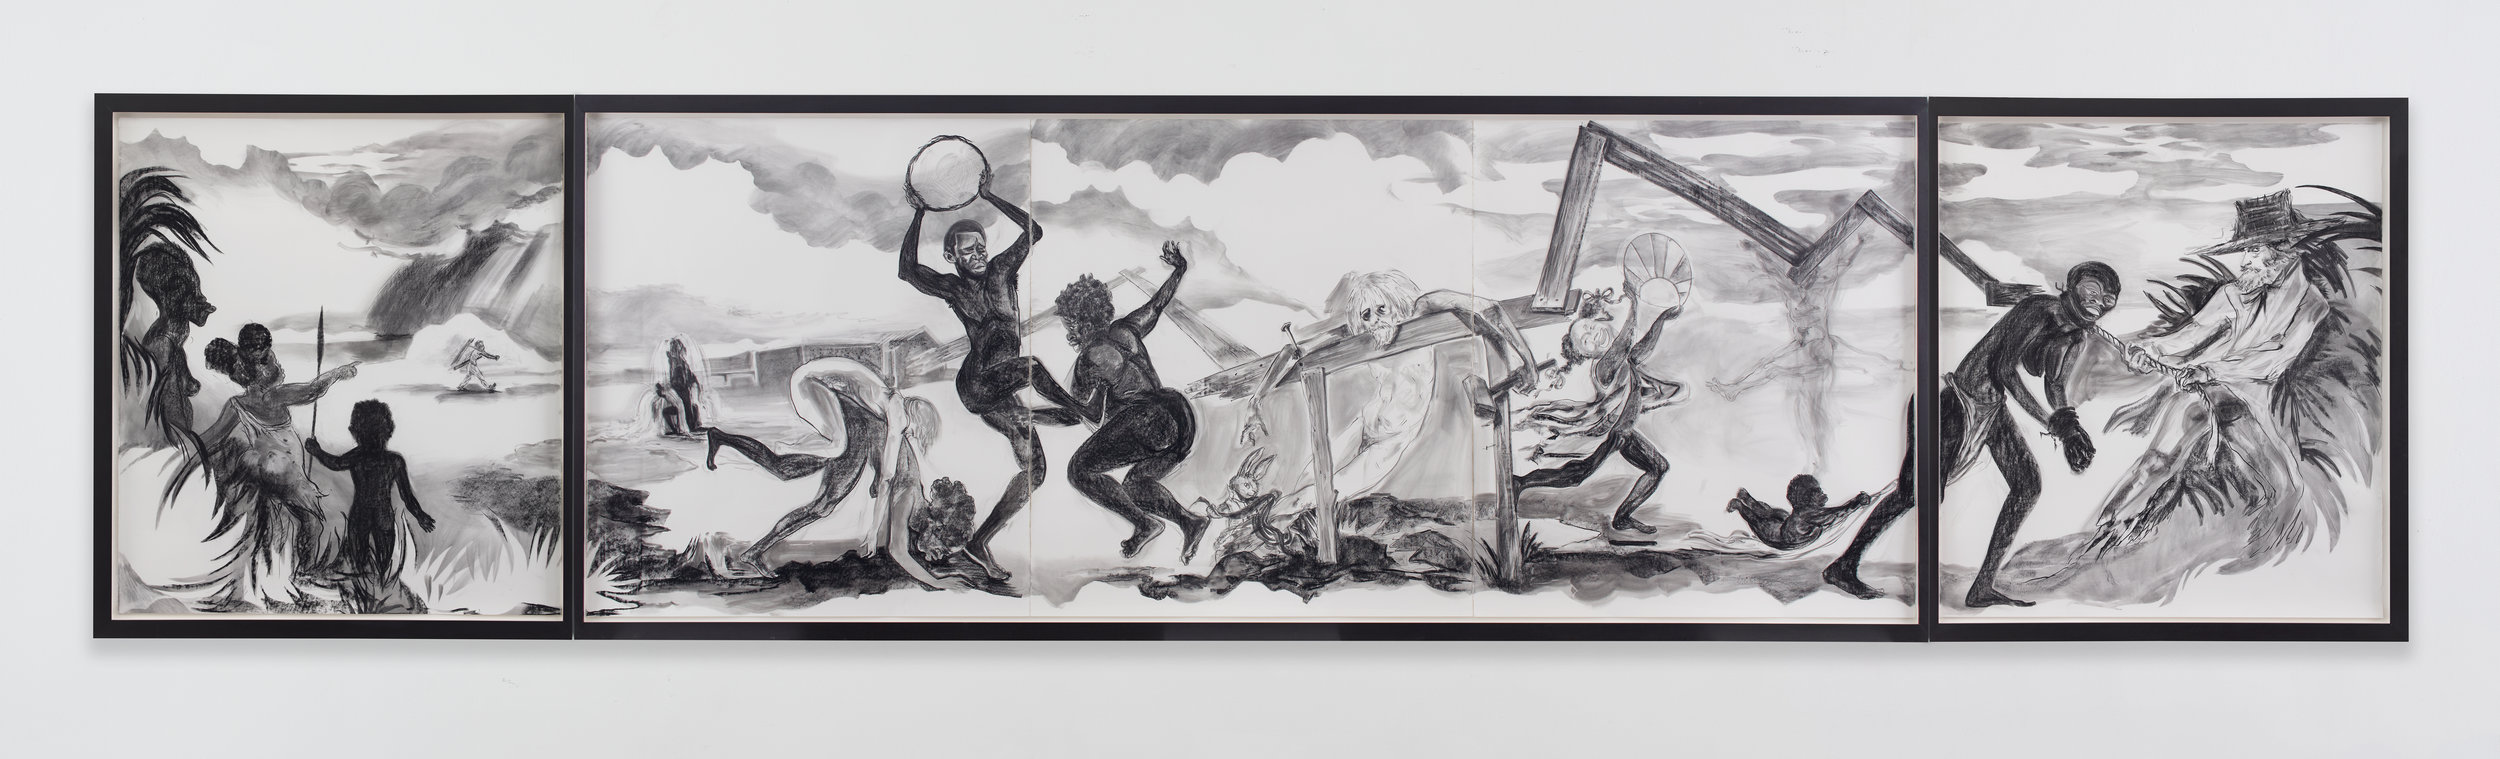 Easter Parade in the Old Country ,2016. Kara Walker (American, born 1969). Graphite lumber marker and charcoal on paper;170.2 x 765.2 cm. © Kara Walker, courtesy of Sikkema Jenkins & Co., New York.